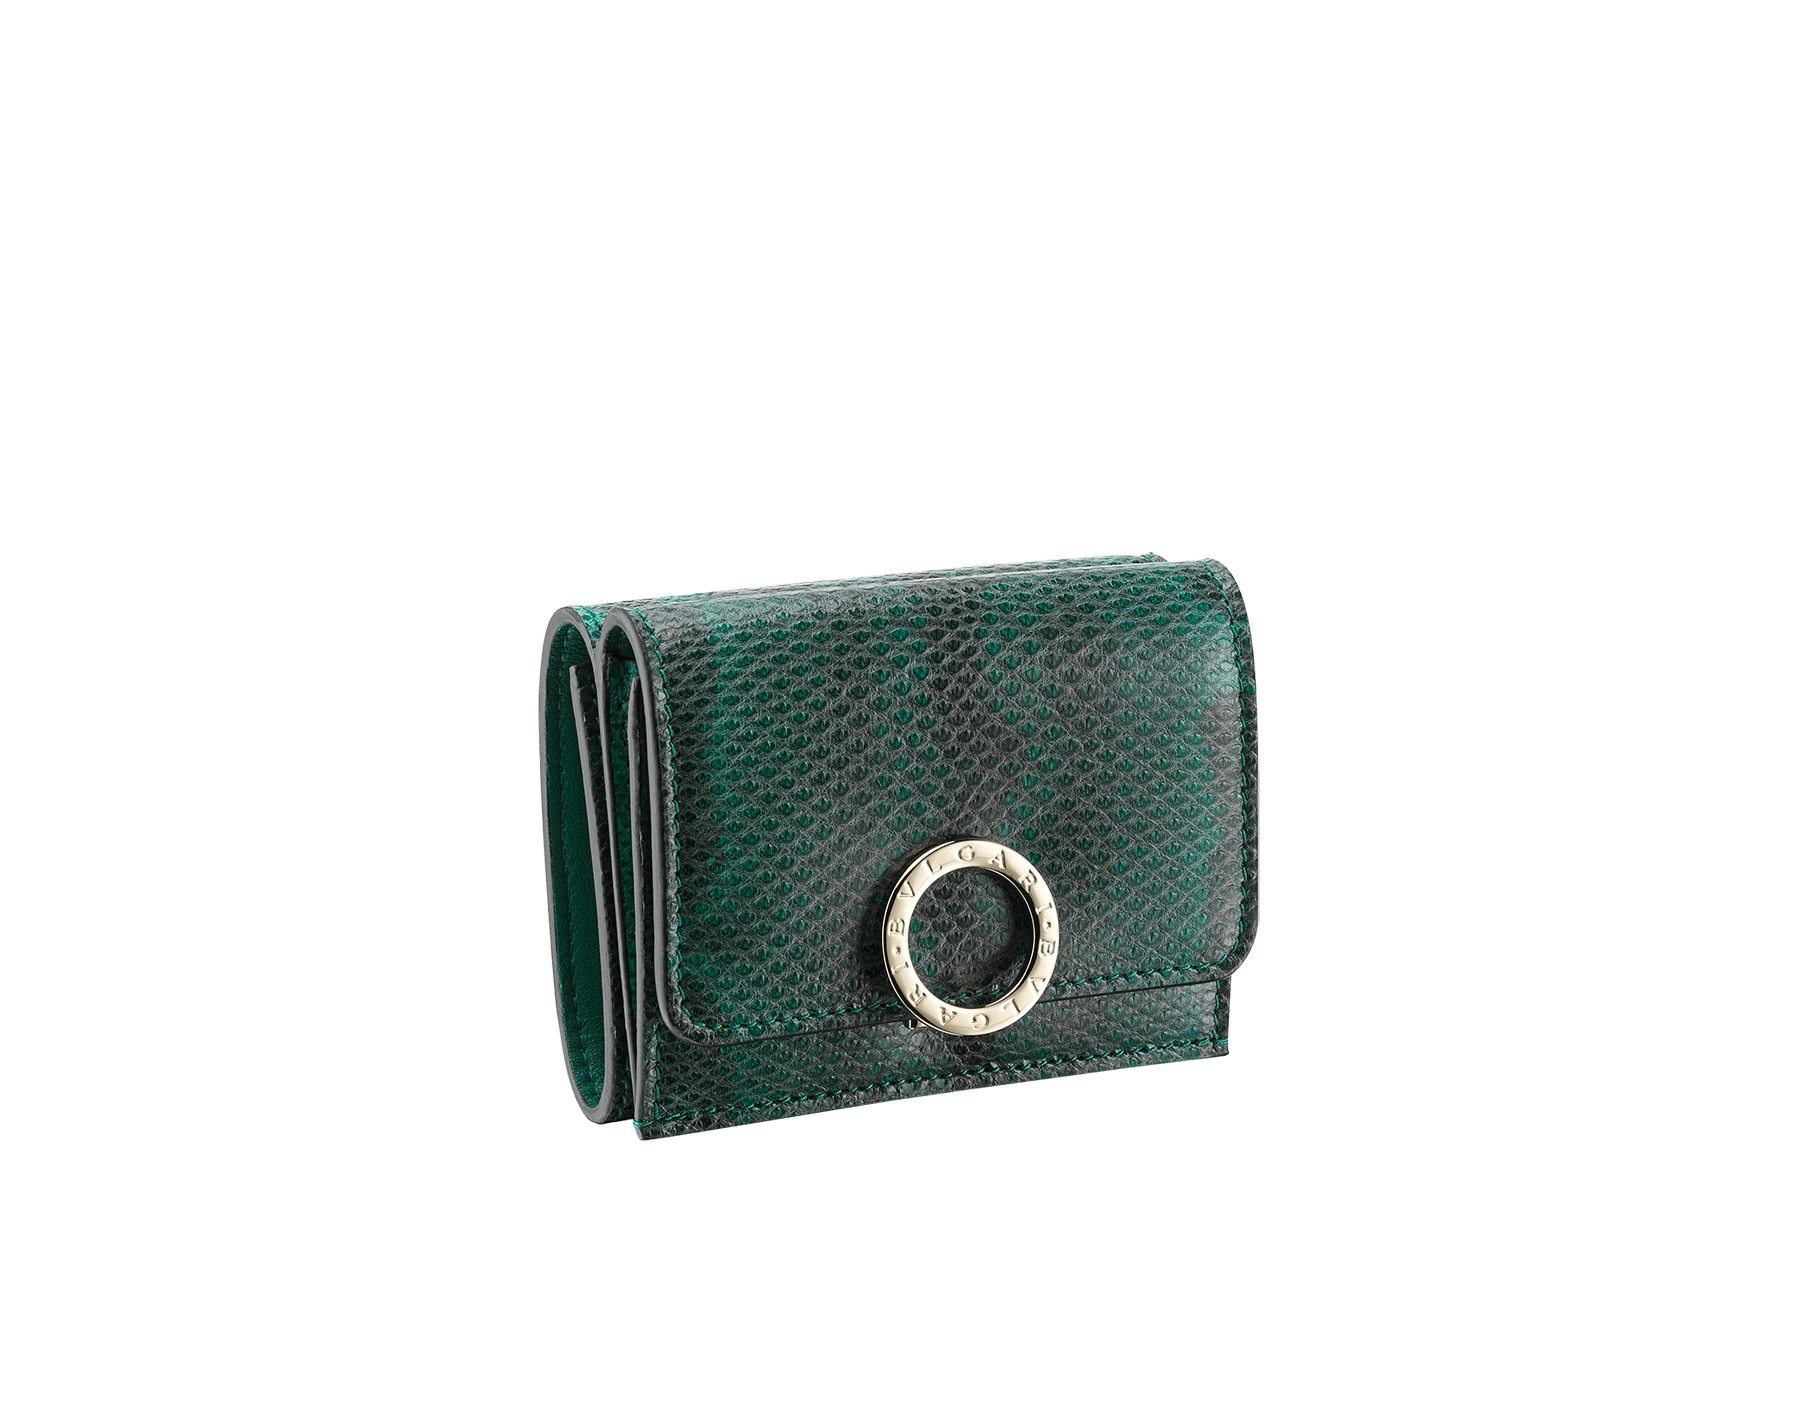 BVLGARI BVLGARI compact wallet in emerald green shiny karung skin and emerald green nappa leather. Iconic logo closure clip in light gold plated brass on the flap and press button closure on the body. 289350 image 1